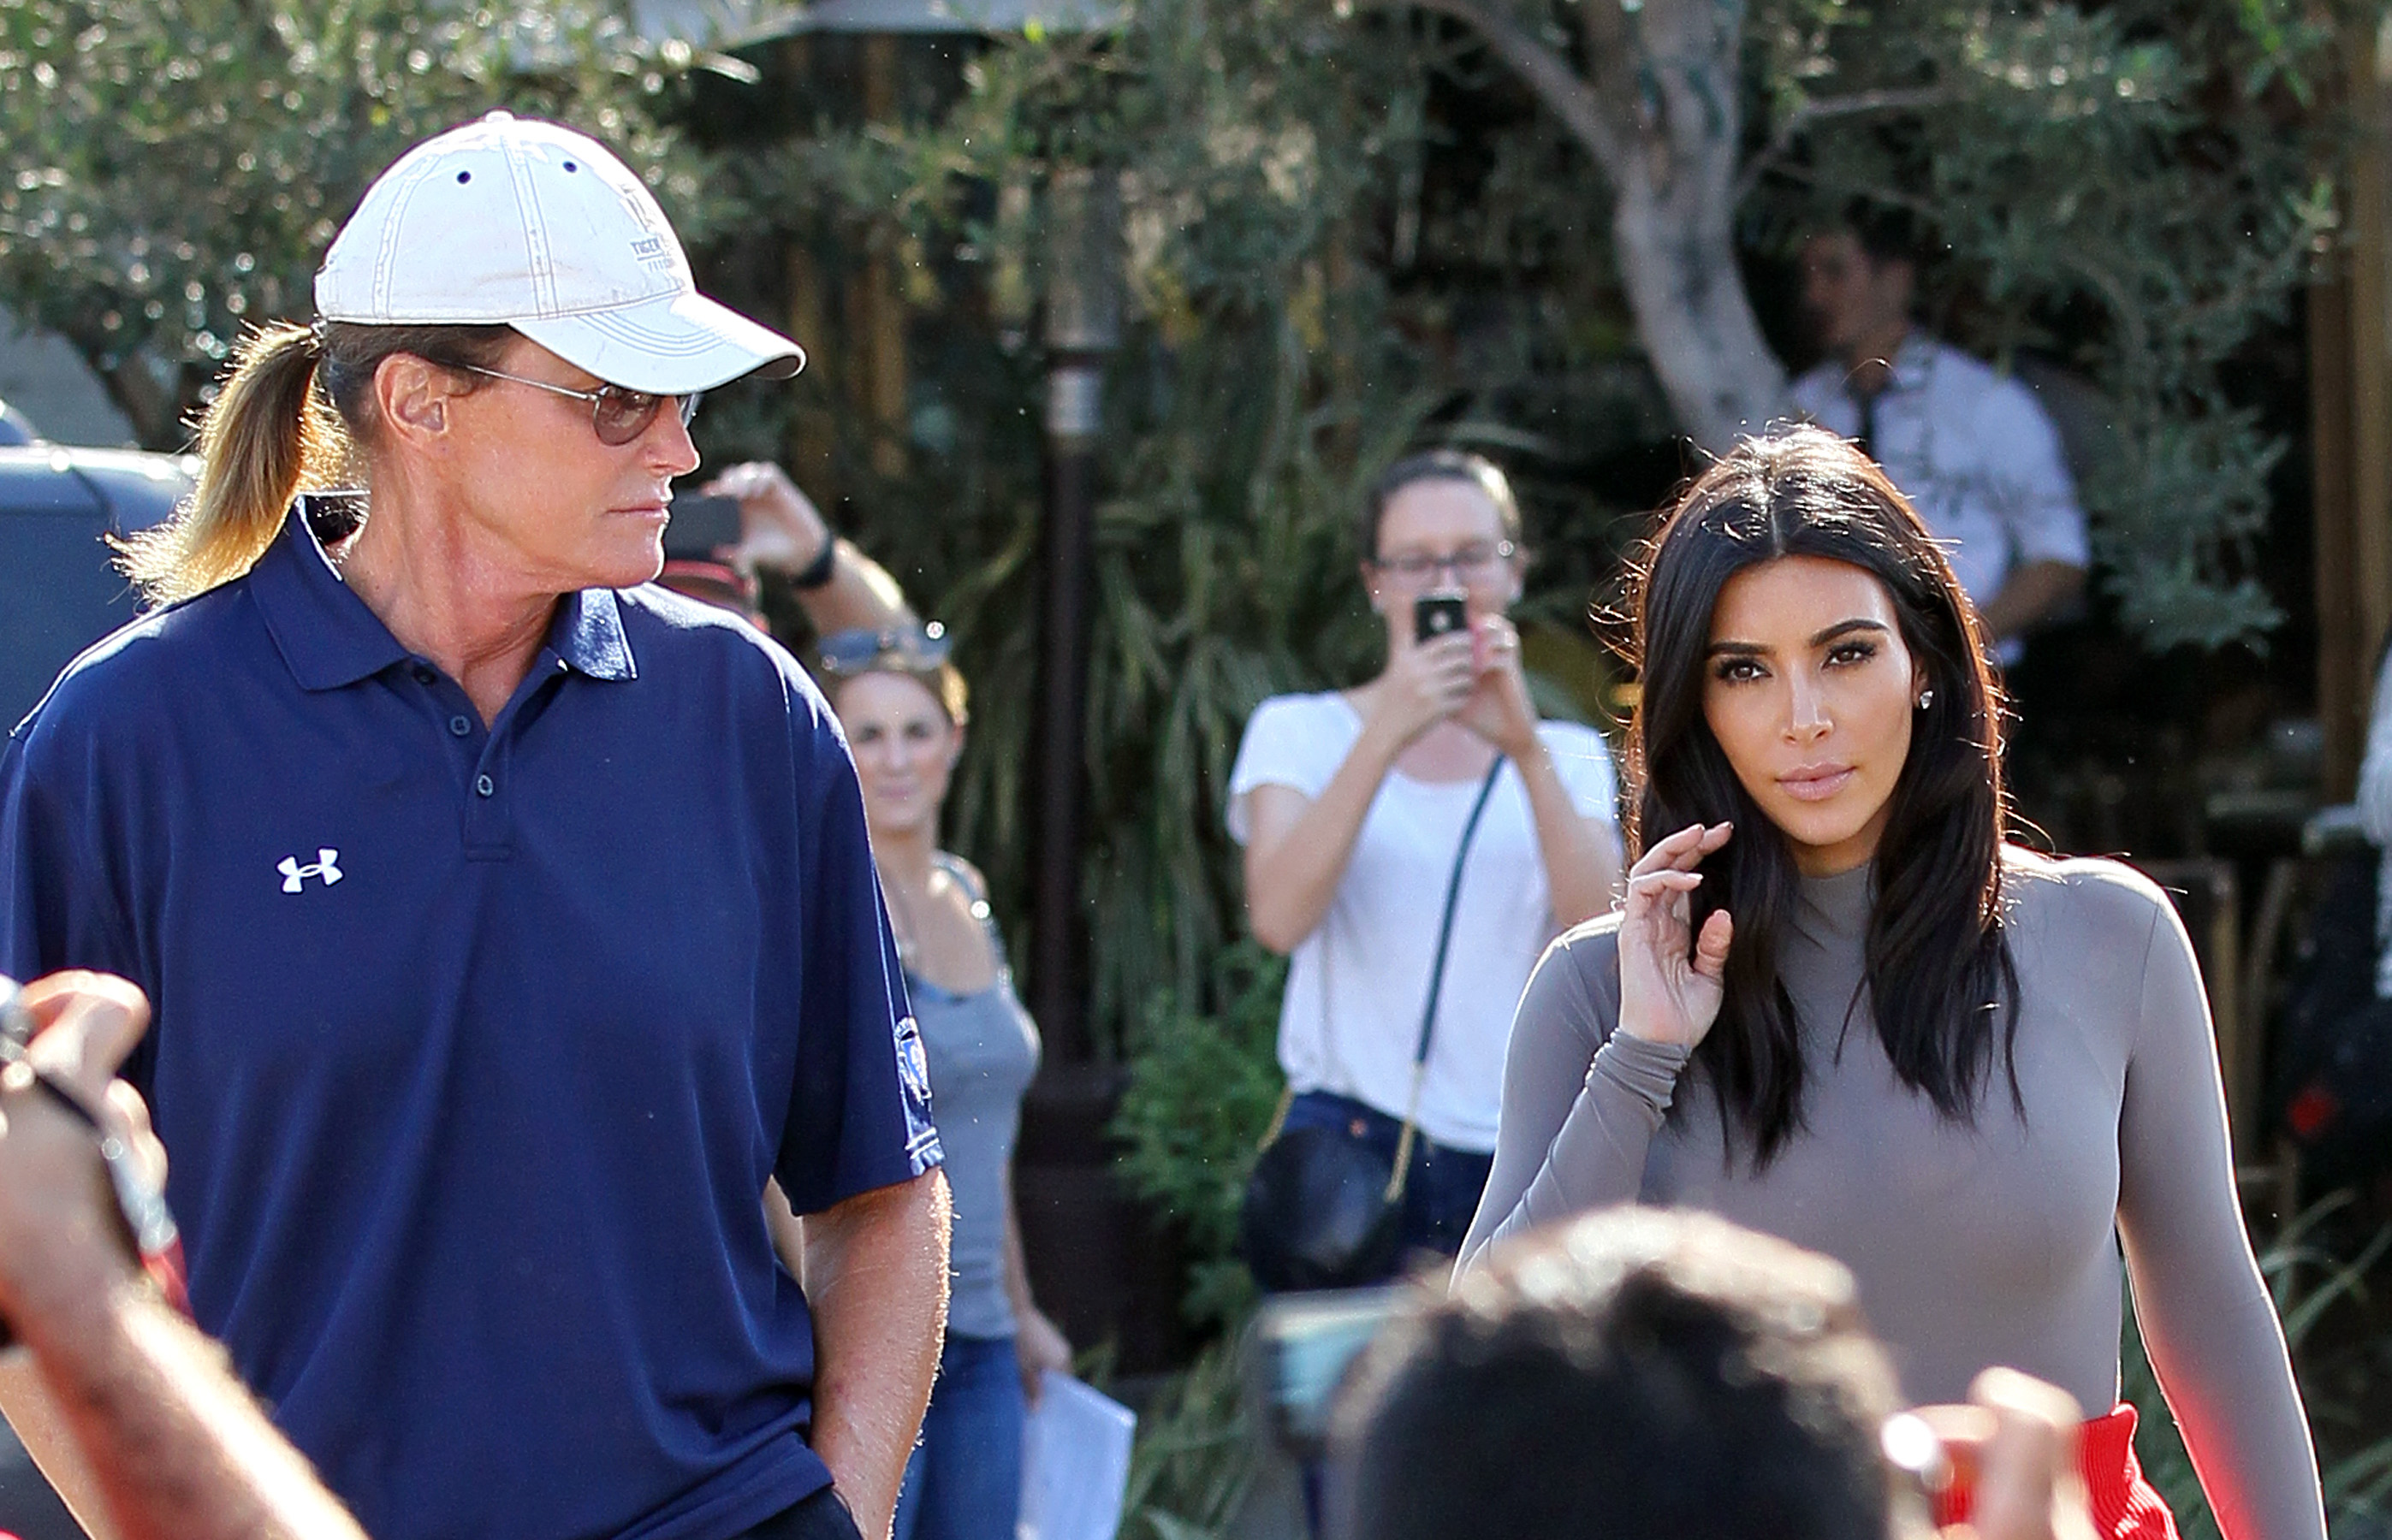 Bruce Jenner and Kim Kardashian are seen filming their reality show in Los Angeles on Oct. 20, 2014.